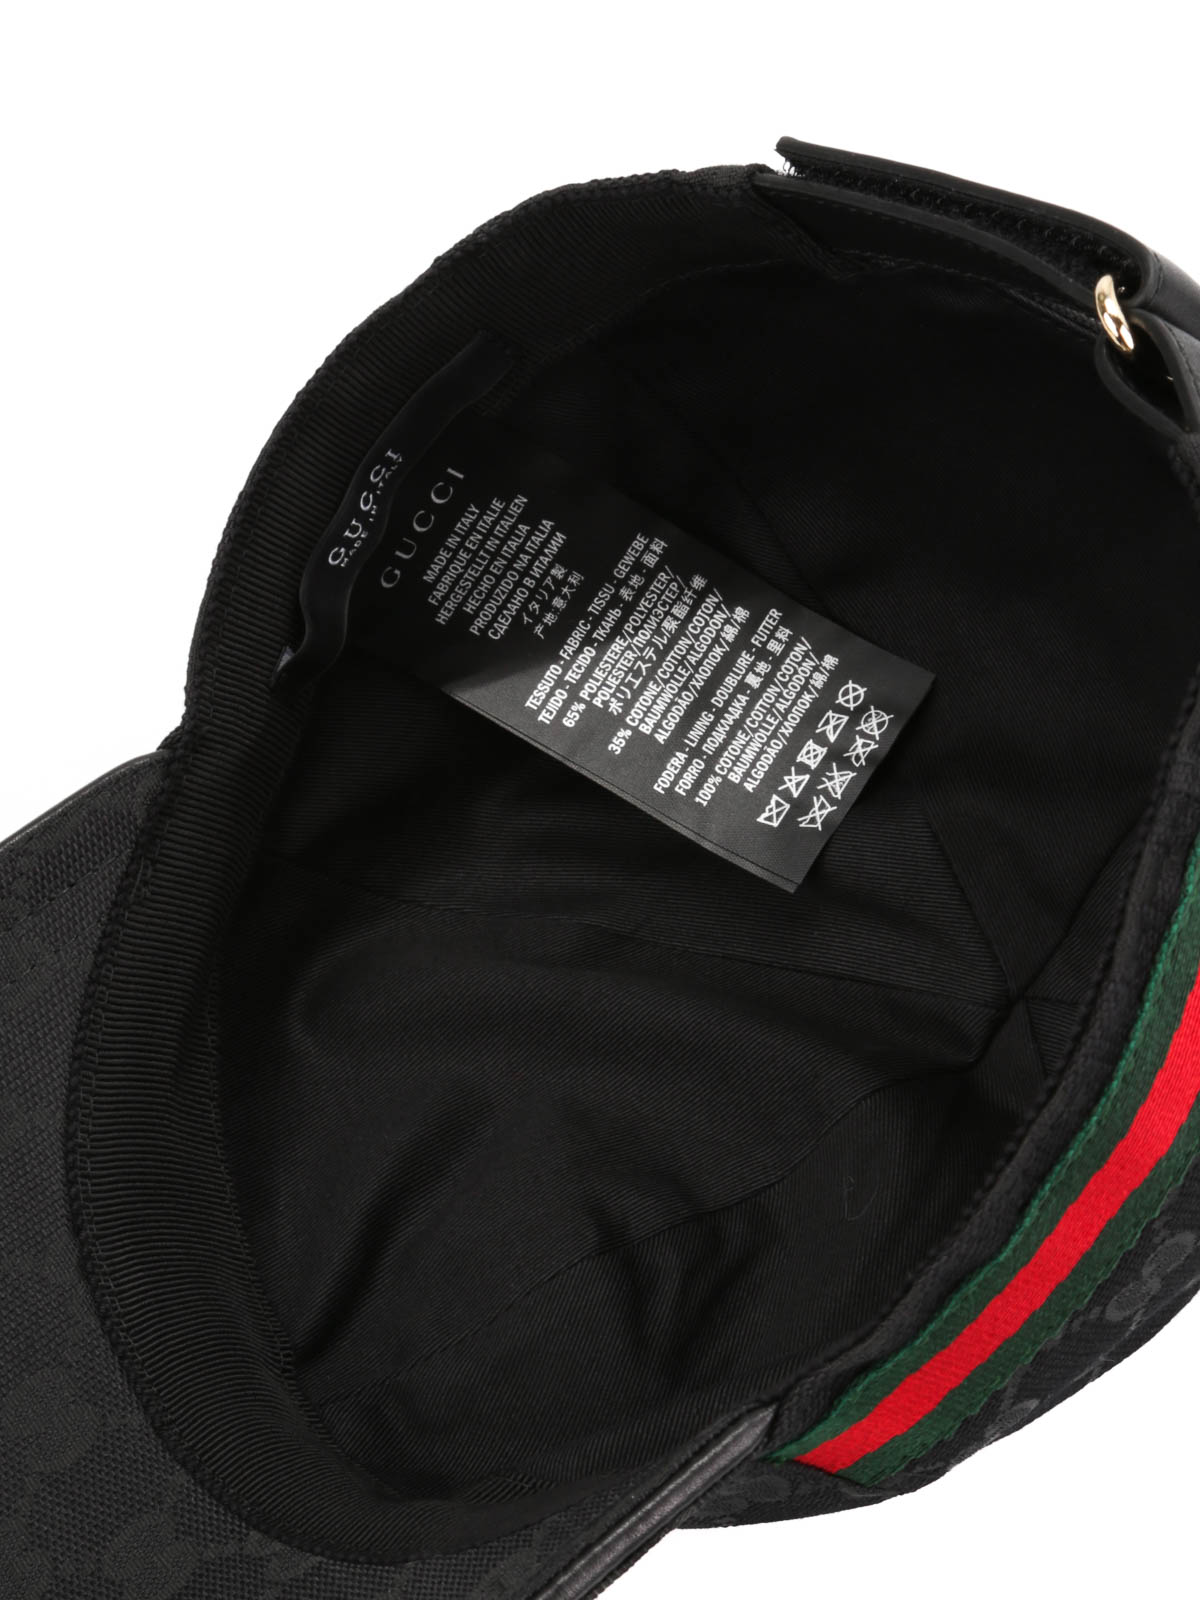 Gucci - GG canvas baseball hat - hats   caps - 200035 FFKPG 1060 cbbc28cde5e